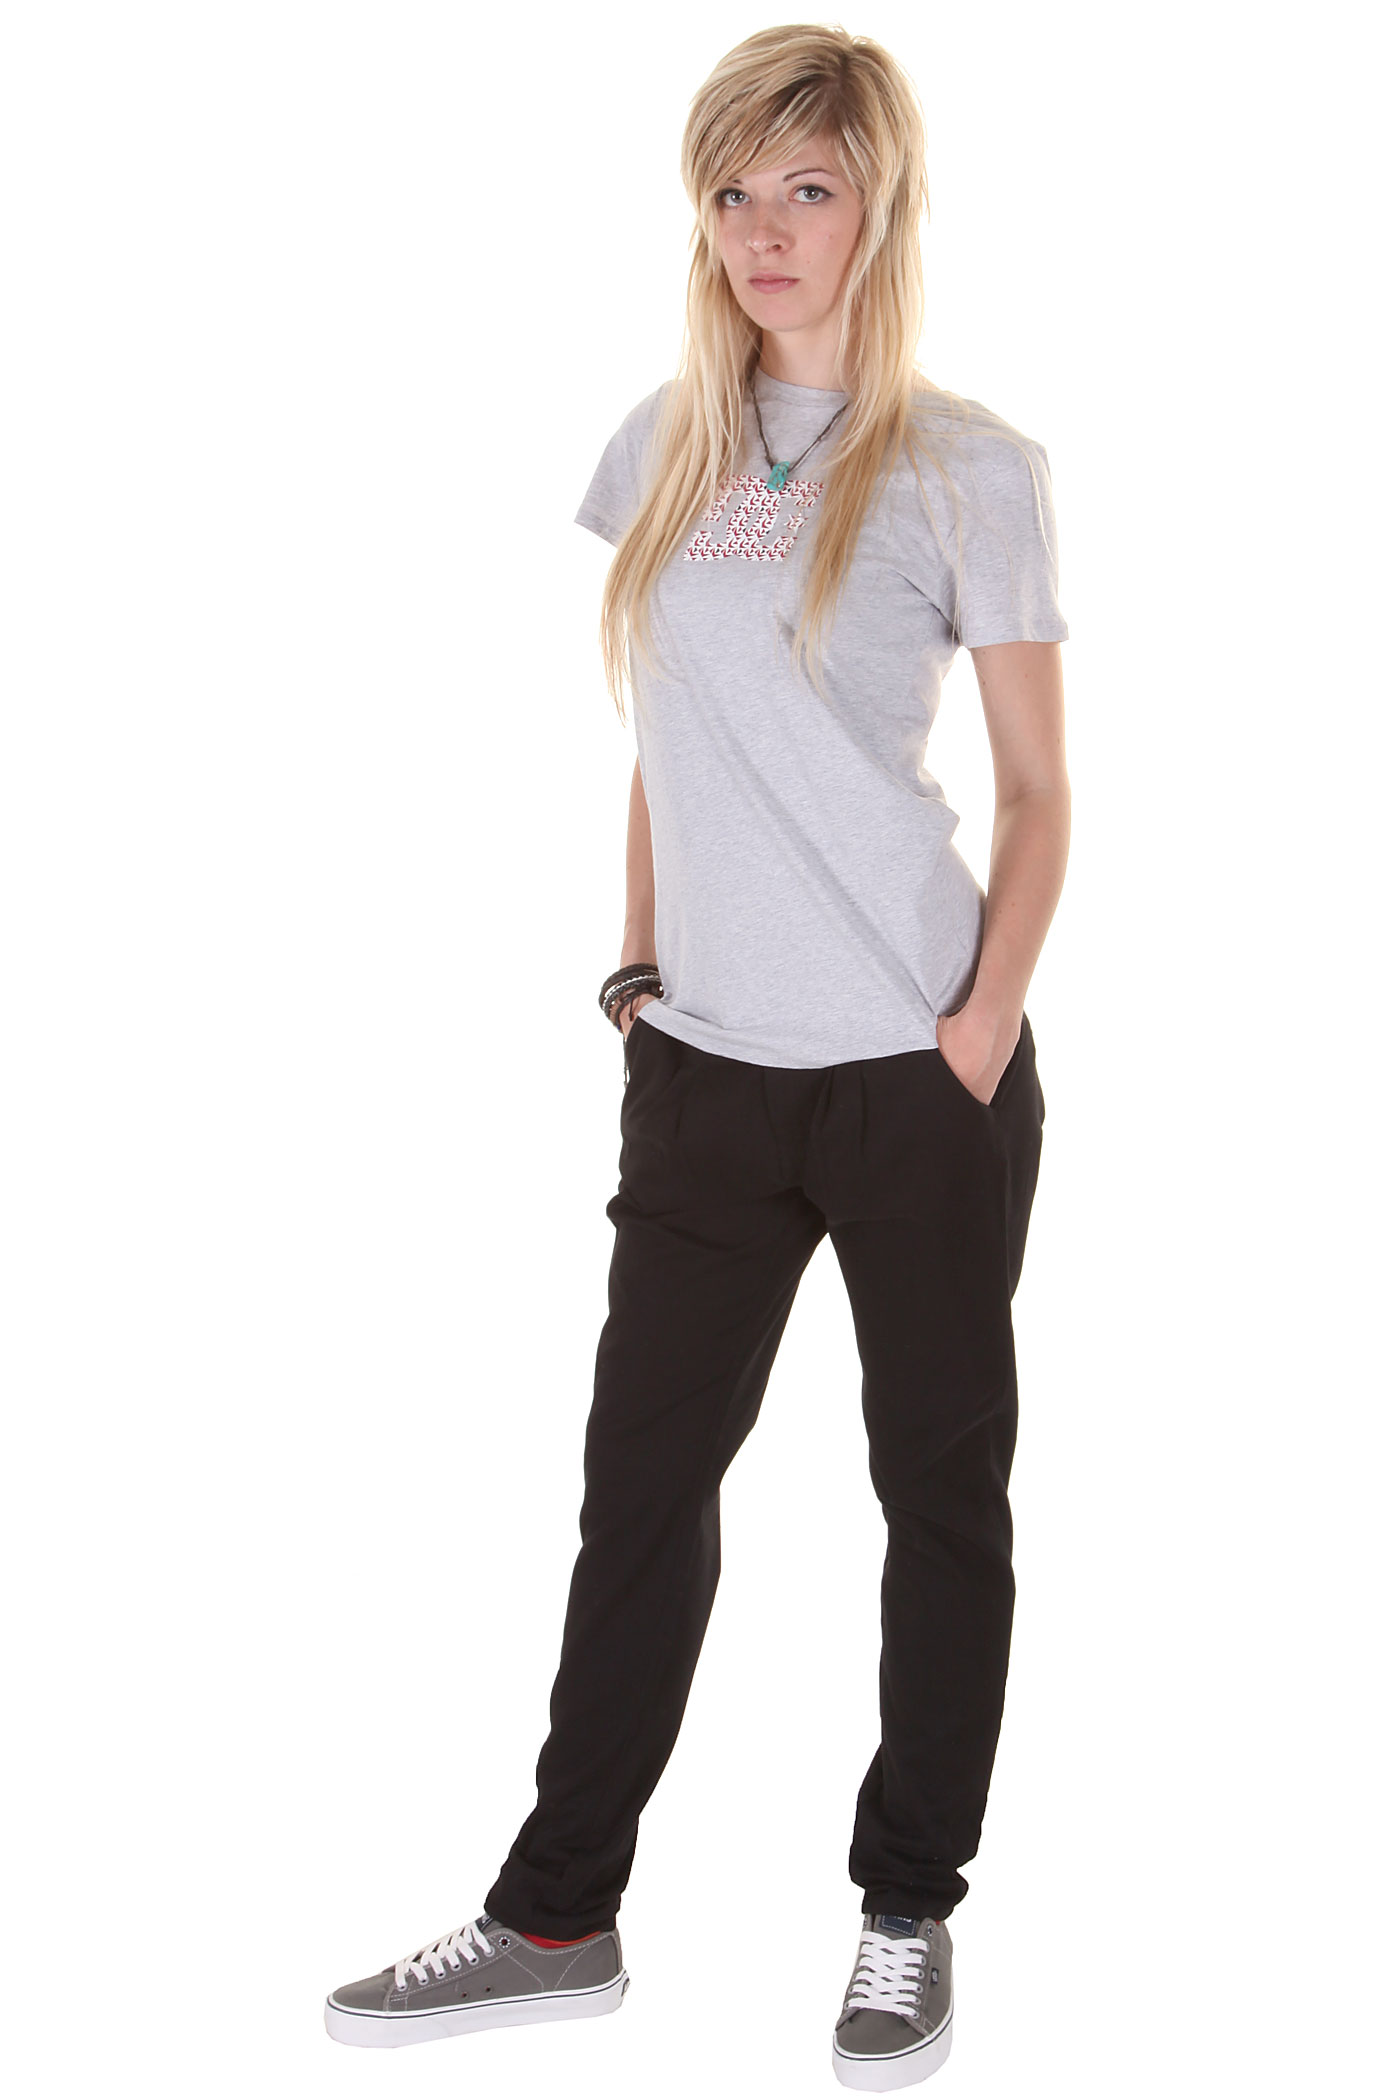 Original Getting Dressed Is Easy When You Have A Wardrobe Essential On Hand Like The Bootcut Chino Pants From Mossimo Supply Co Slightly  Available In Basic Colors Like Black, Navy And Tan